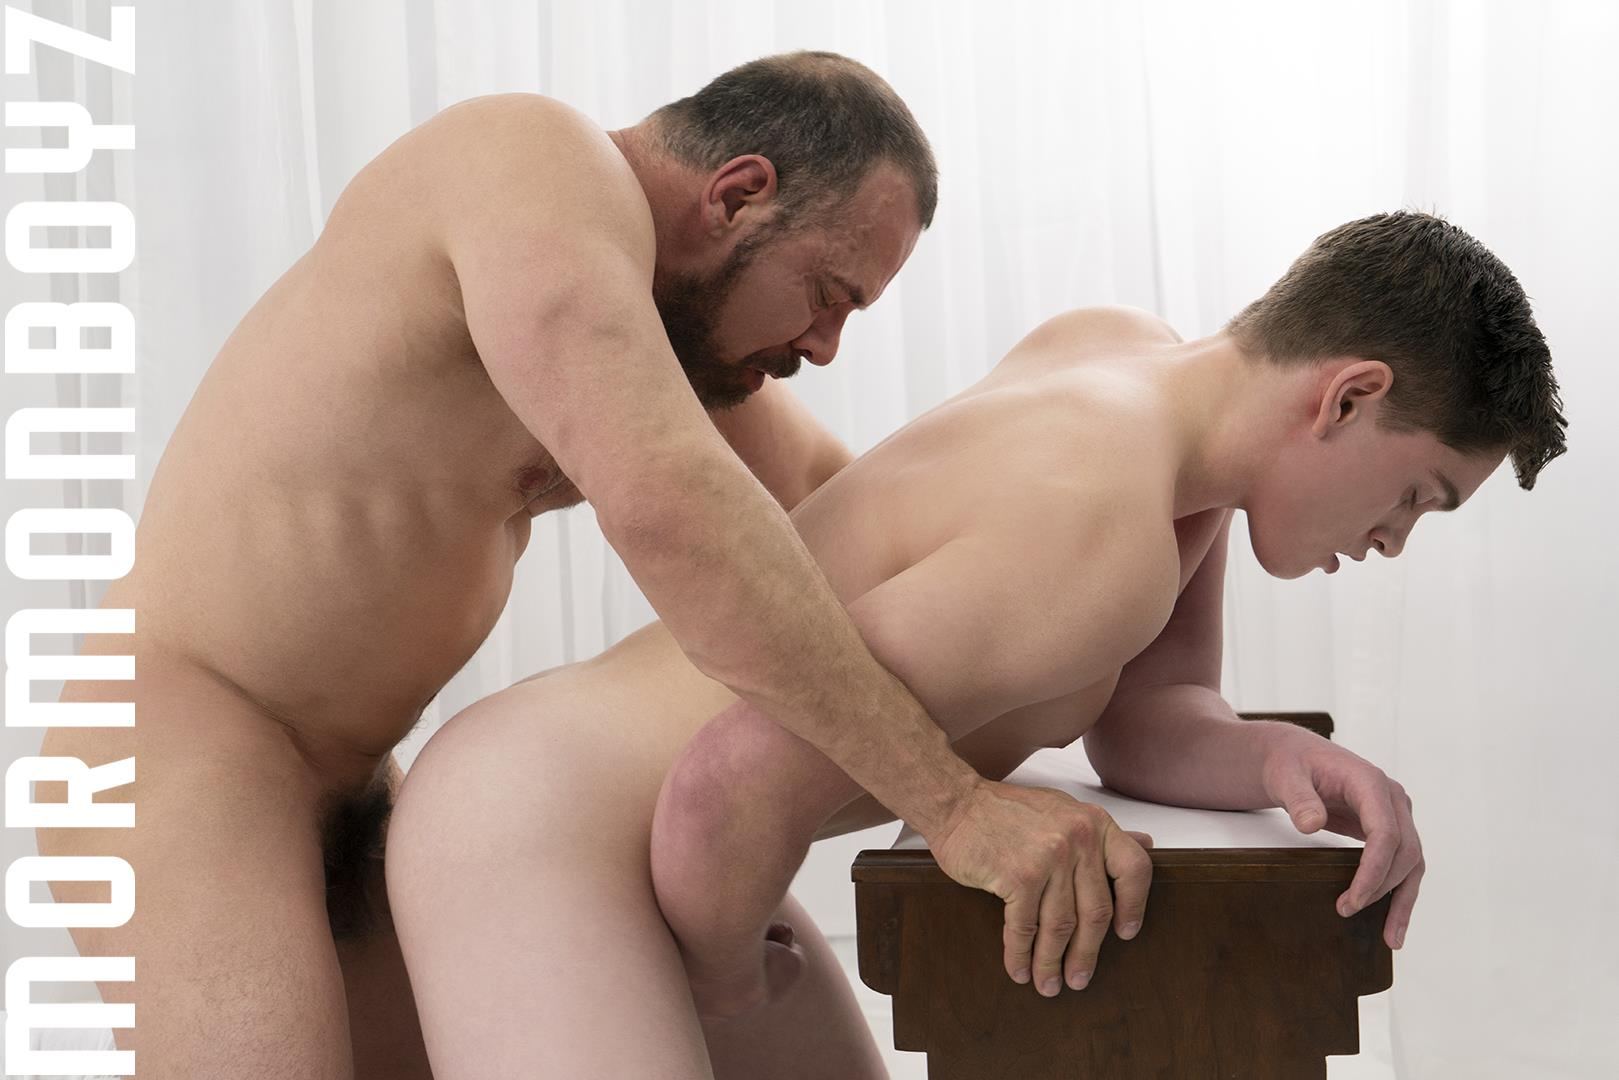 Mormon-Boyz-President-Ballard-and-Elder-Edwards-Thick-Dick-Daddy-Barebacking-Boy-Gay-Sex-10 Thick Dick Mormon Daddy Bareback Fucks A Young Mormon Missionary